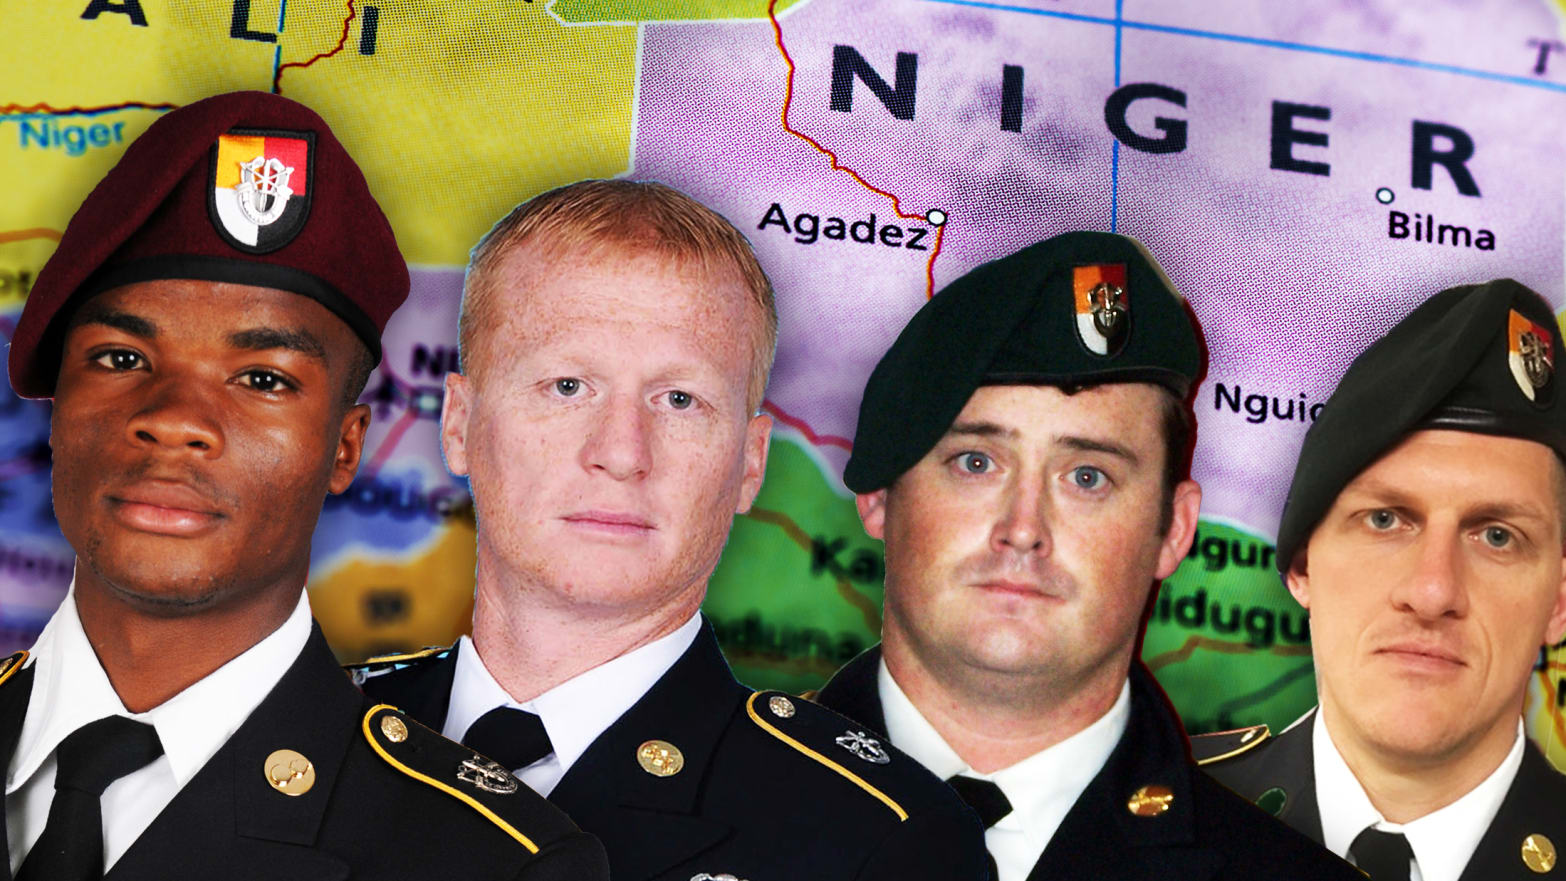 Senators Are Stunned To Discover We Have 1,000 Troops In Niger